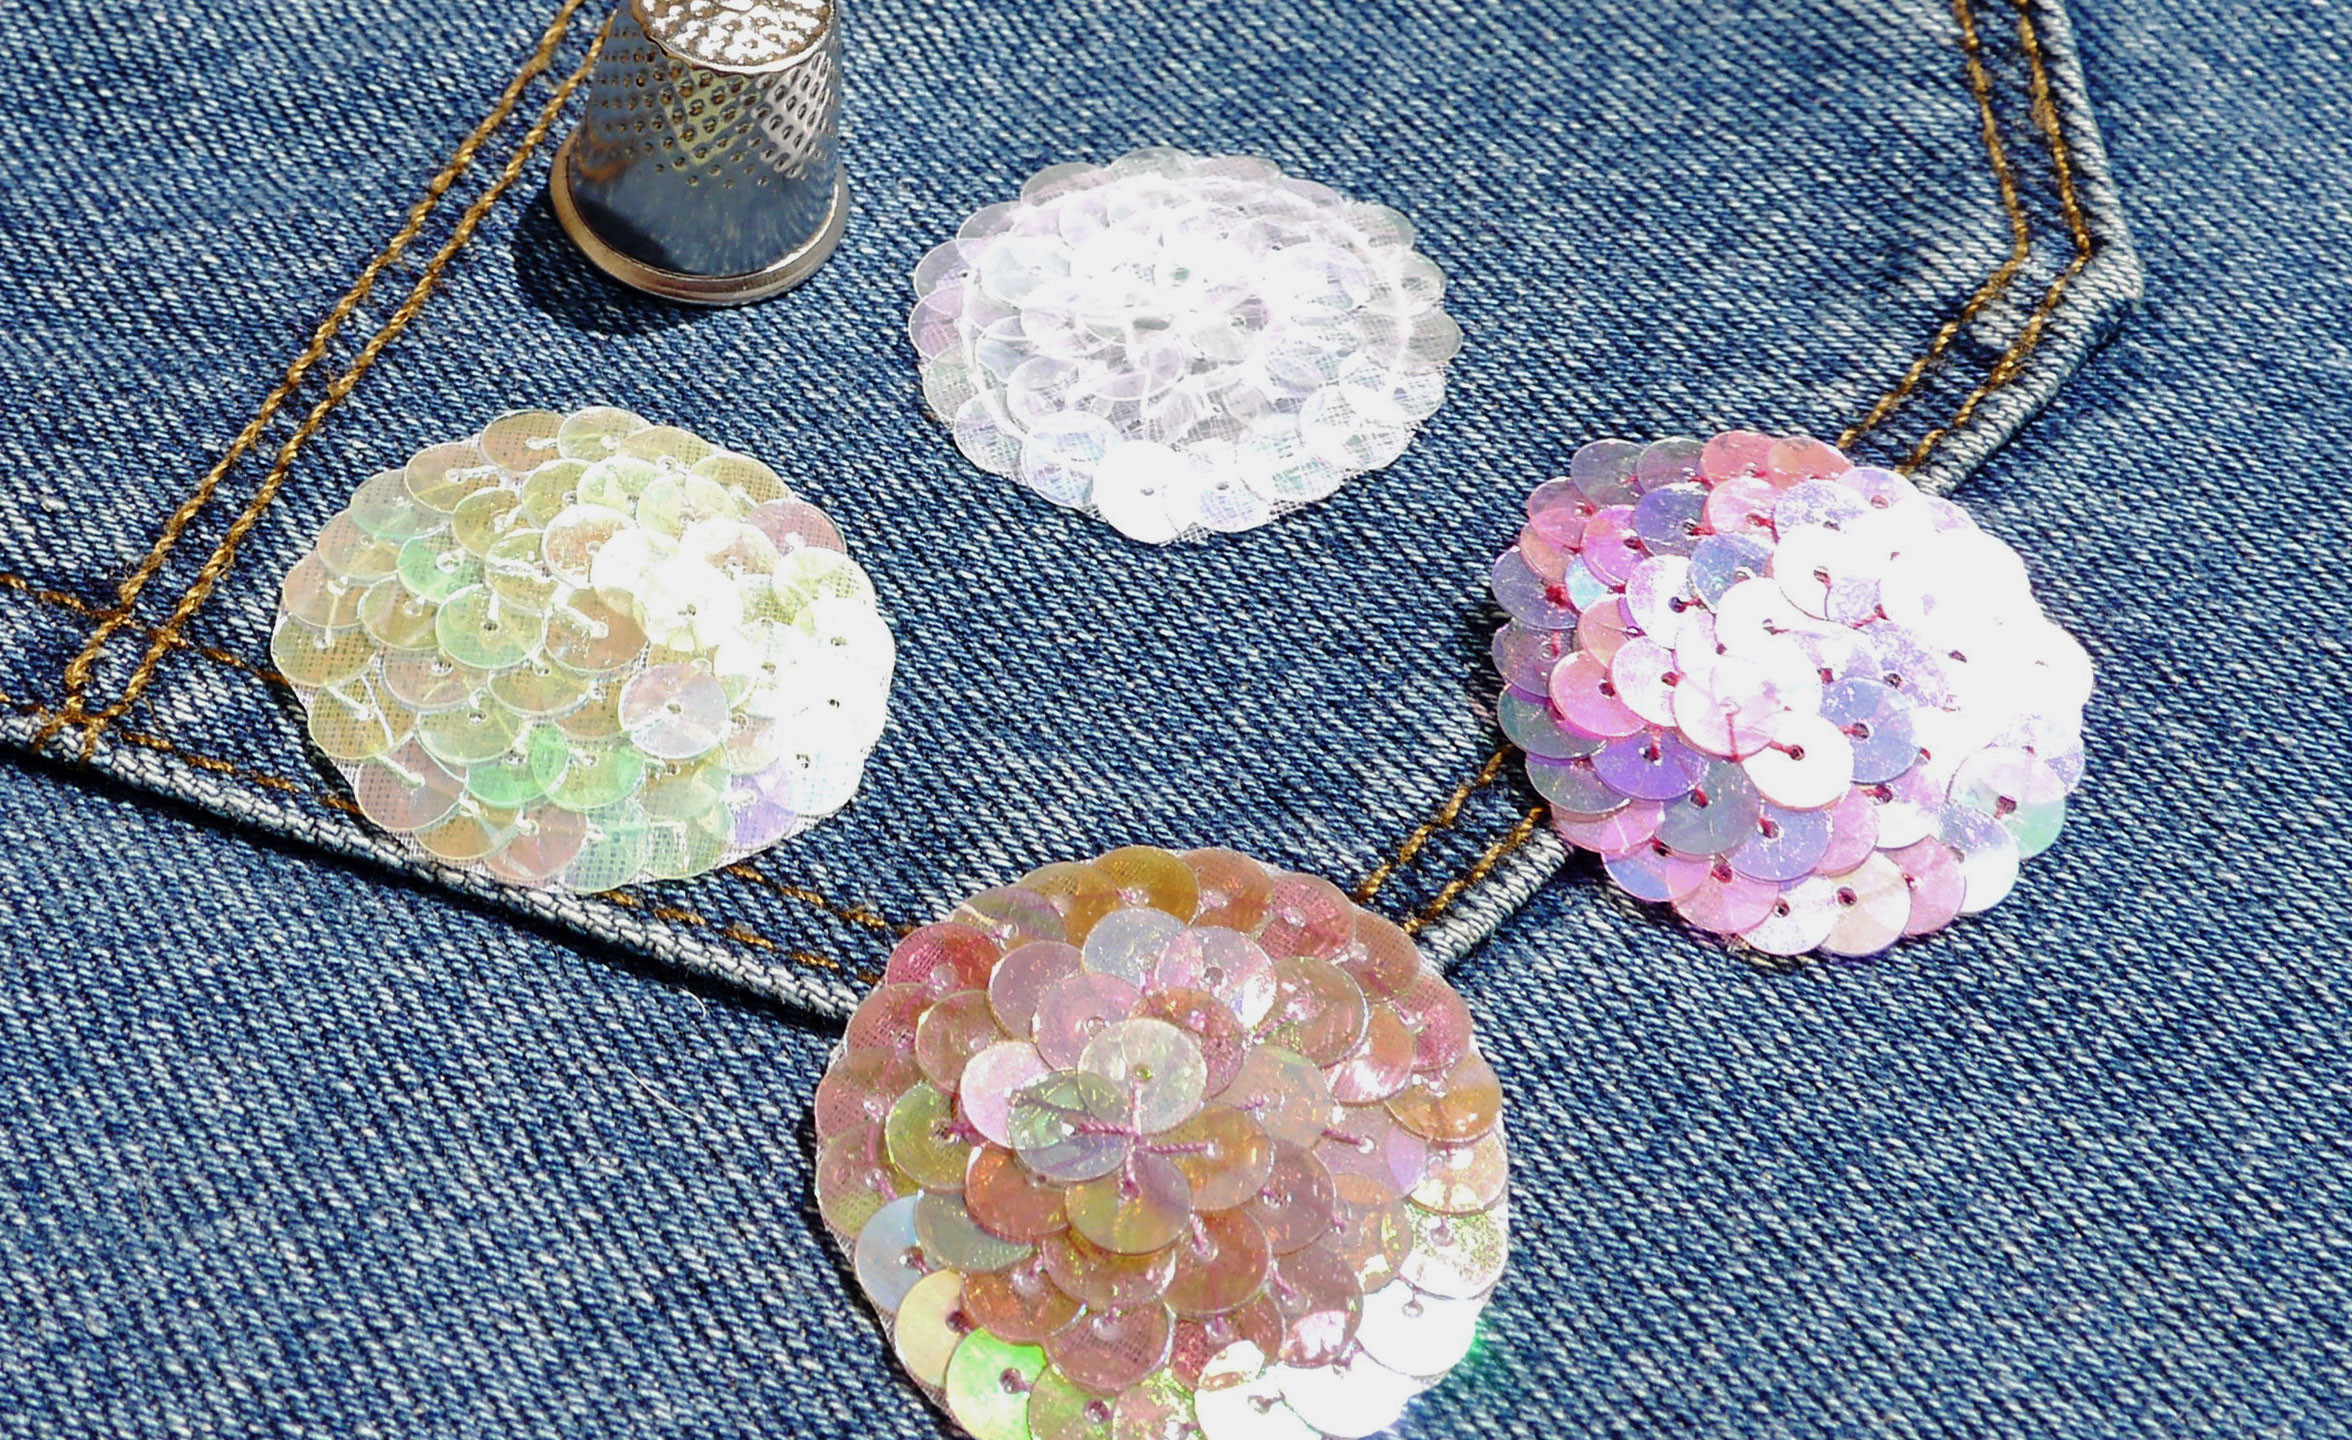 Sew on Sequin Applique Patches